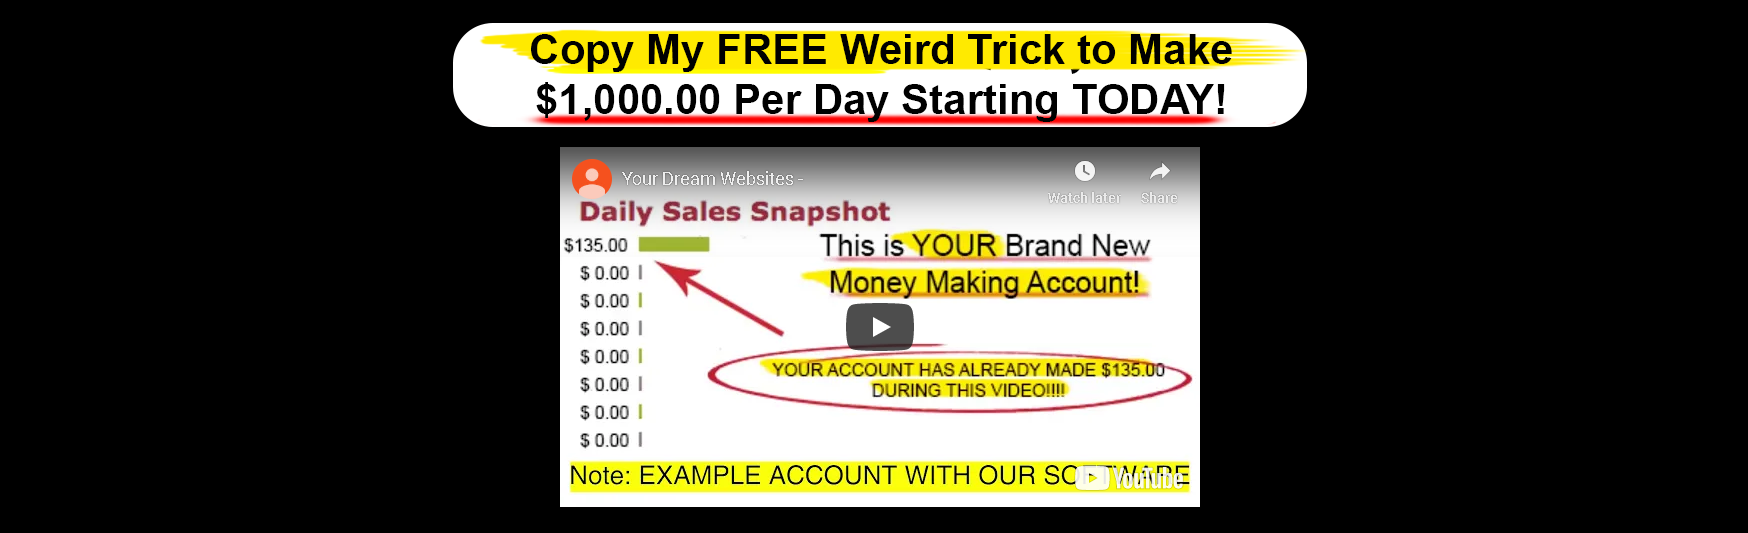 Your Dream Websites Scam Review